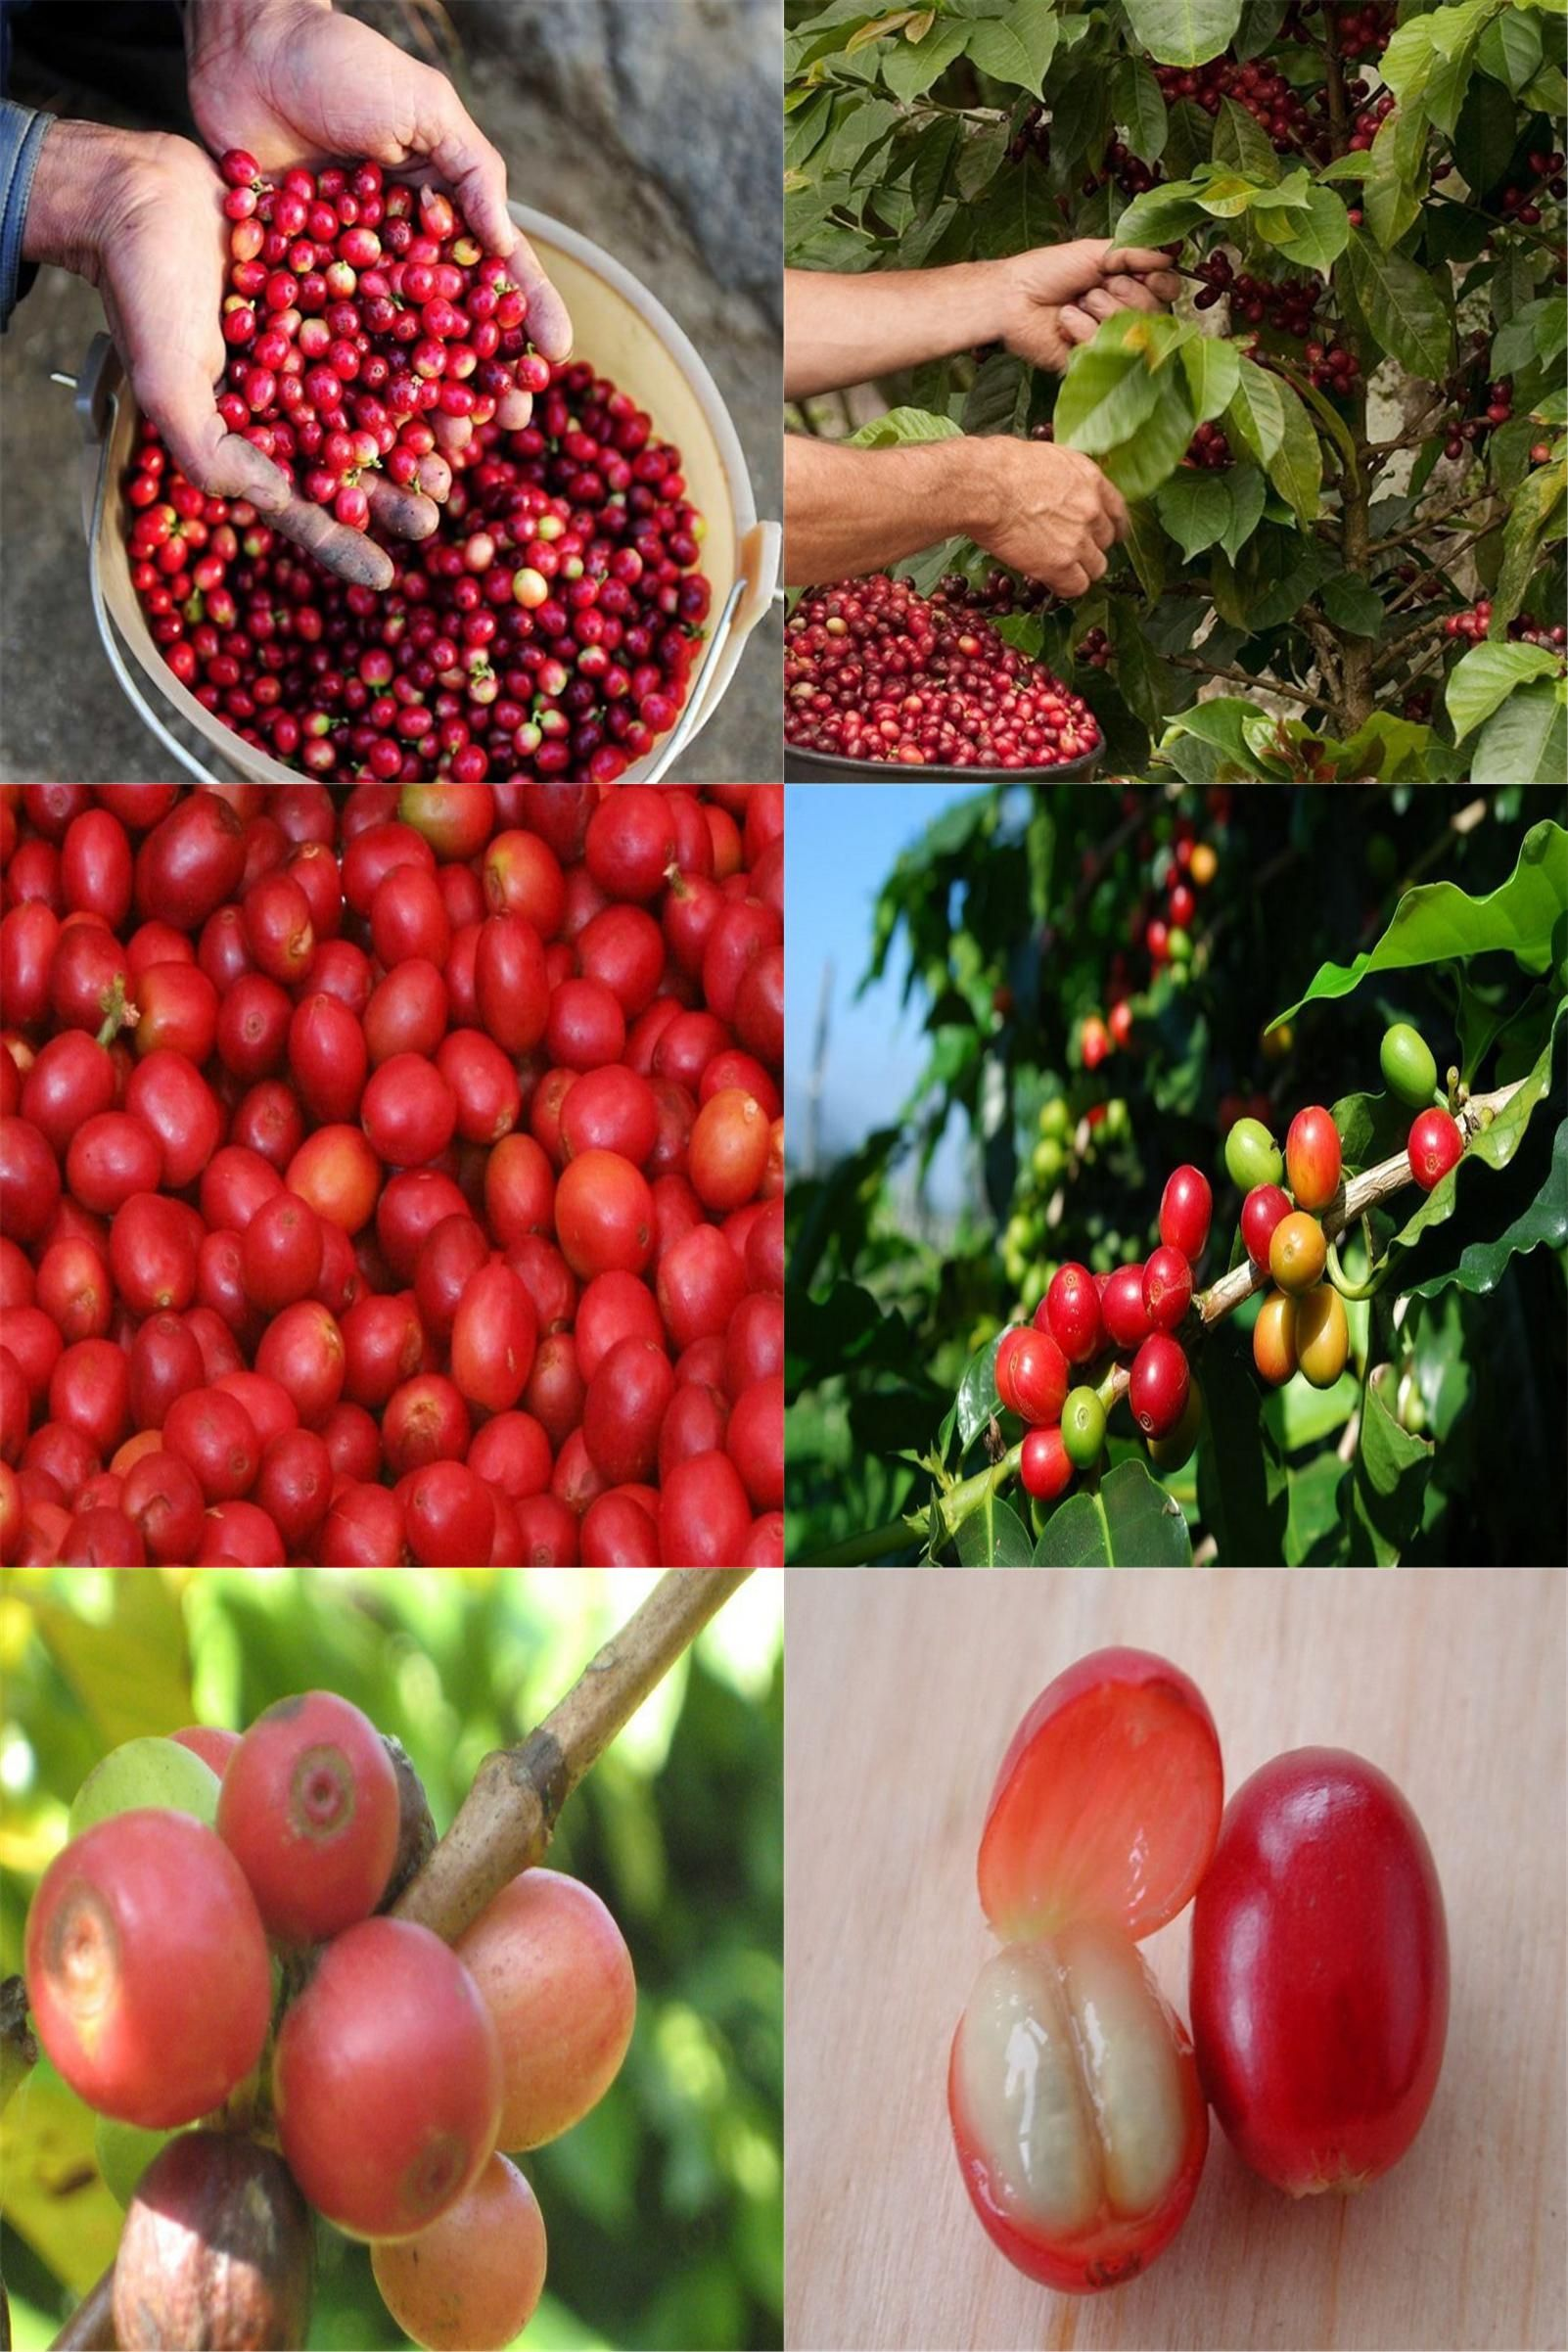 Visit To Buy Coffee Bean Seeds Arabica Coffee Plant Coffea Catura Arabica Seeds 5seeds Lot Advertisement Coffee Plant Arabica Coffee Buy Coffee Beans